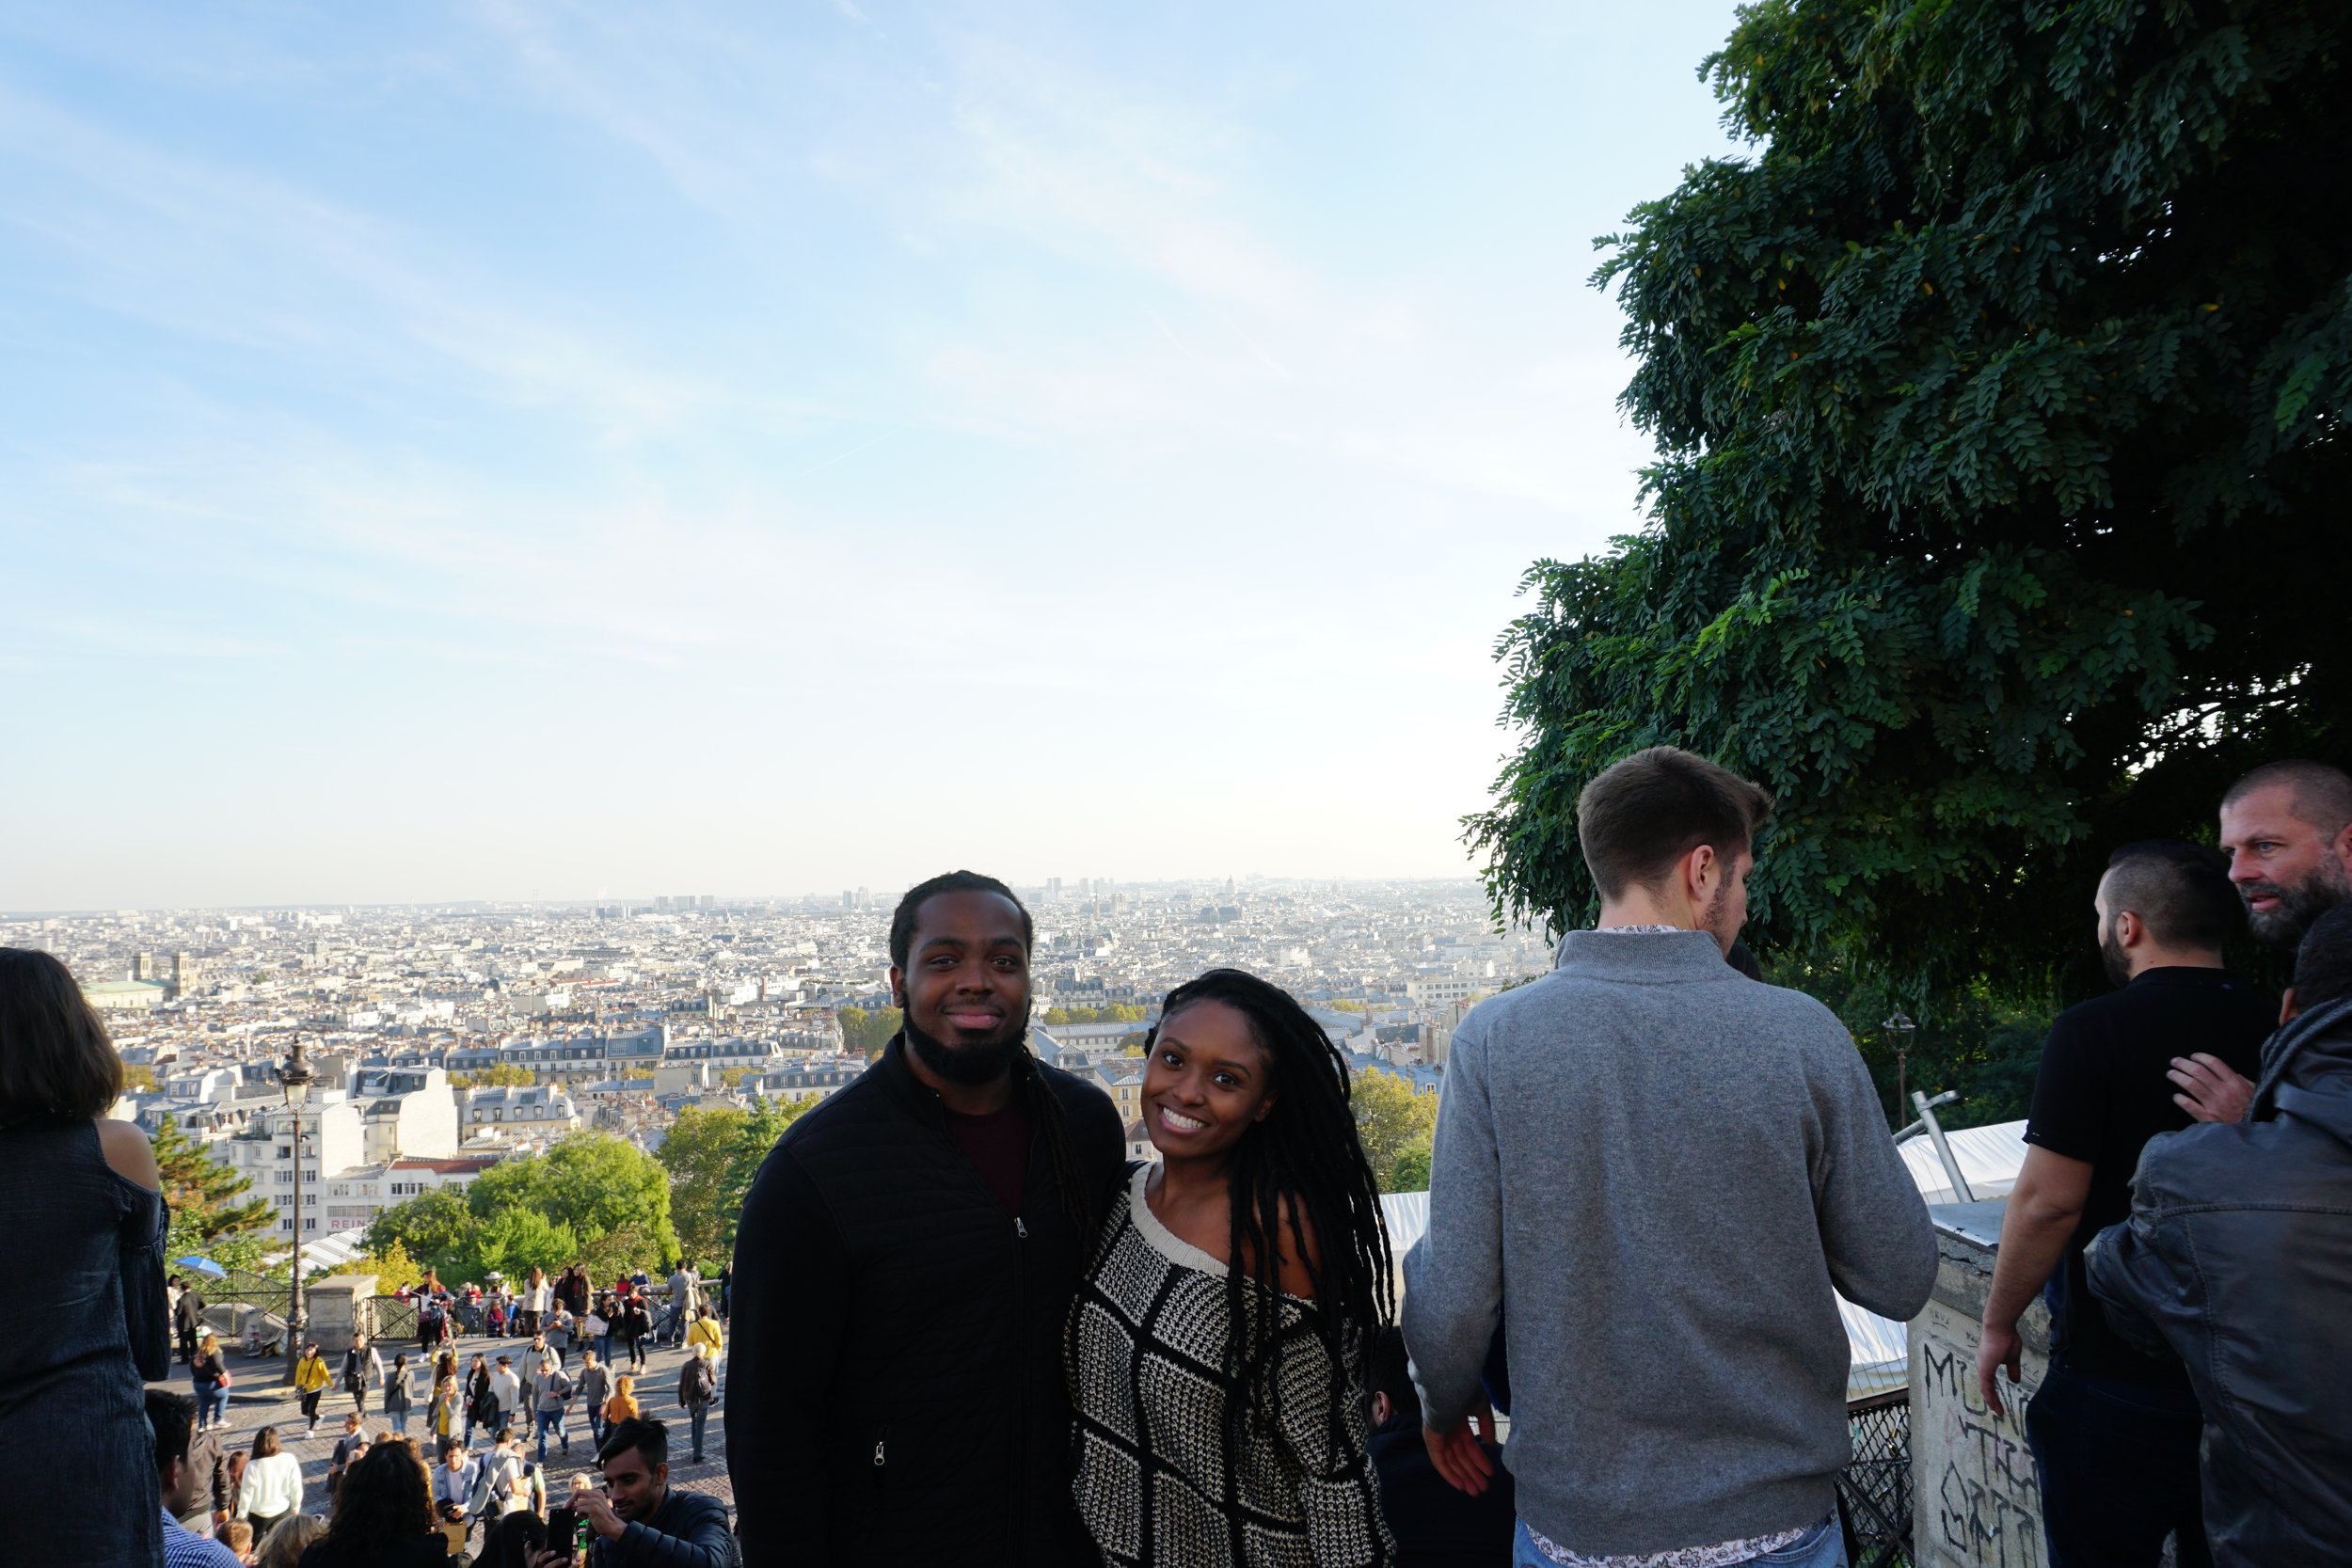 Sacré-Cœur,It is a great spot to relax at as it is the highest point in the city with a vast, beautiful view. -